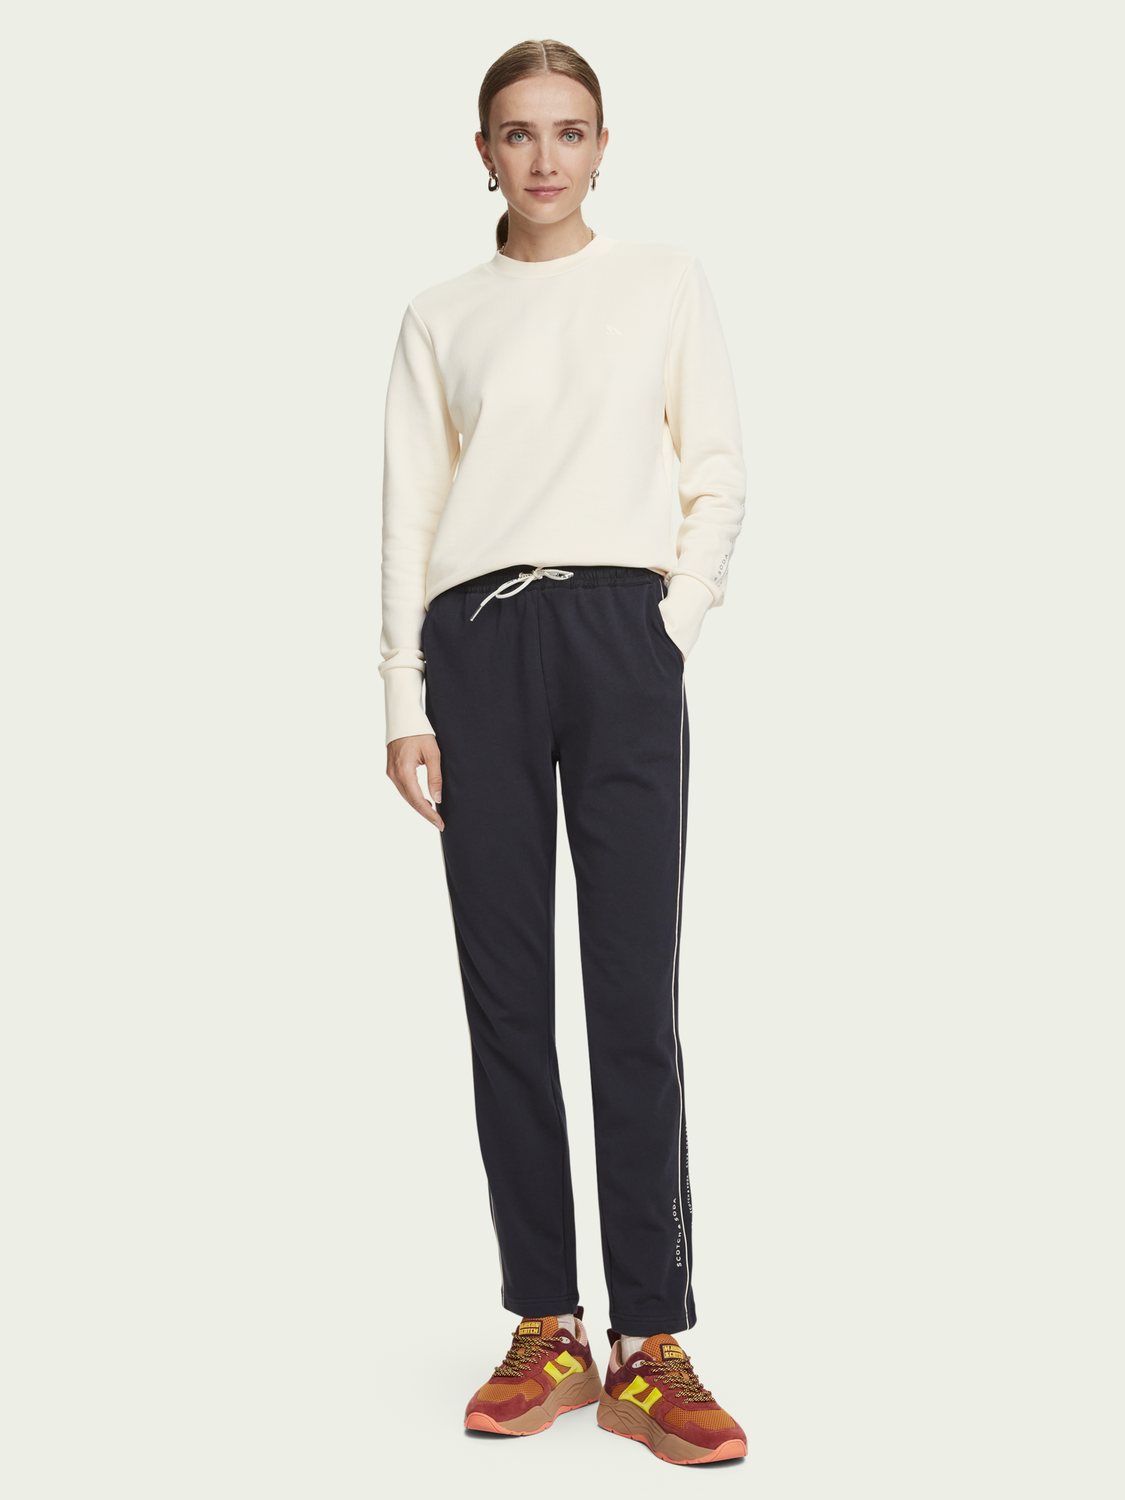 Damen Langärmliges Basic Sweatshirt